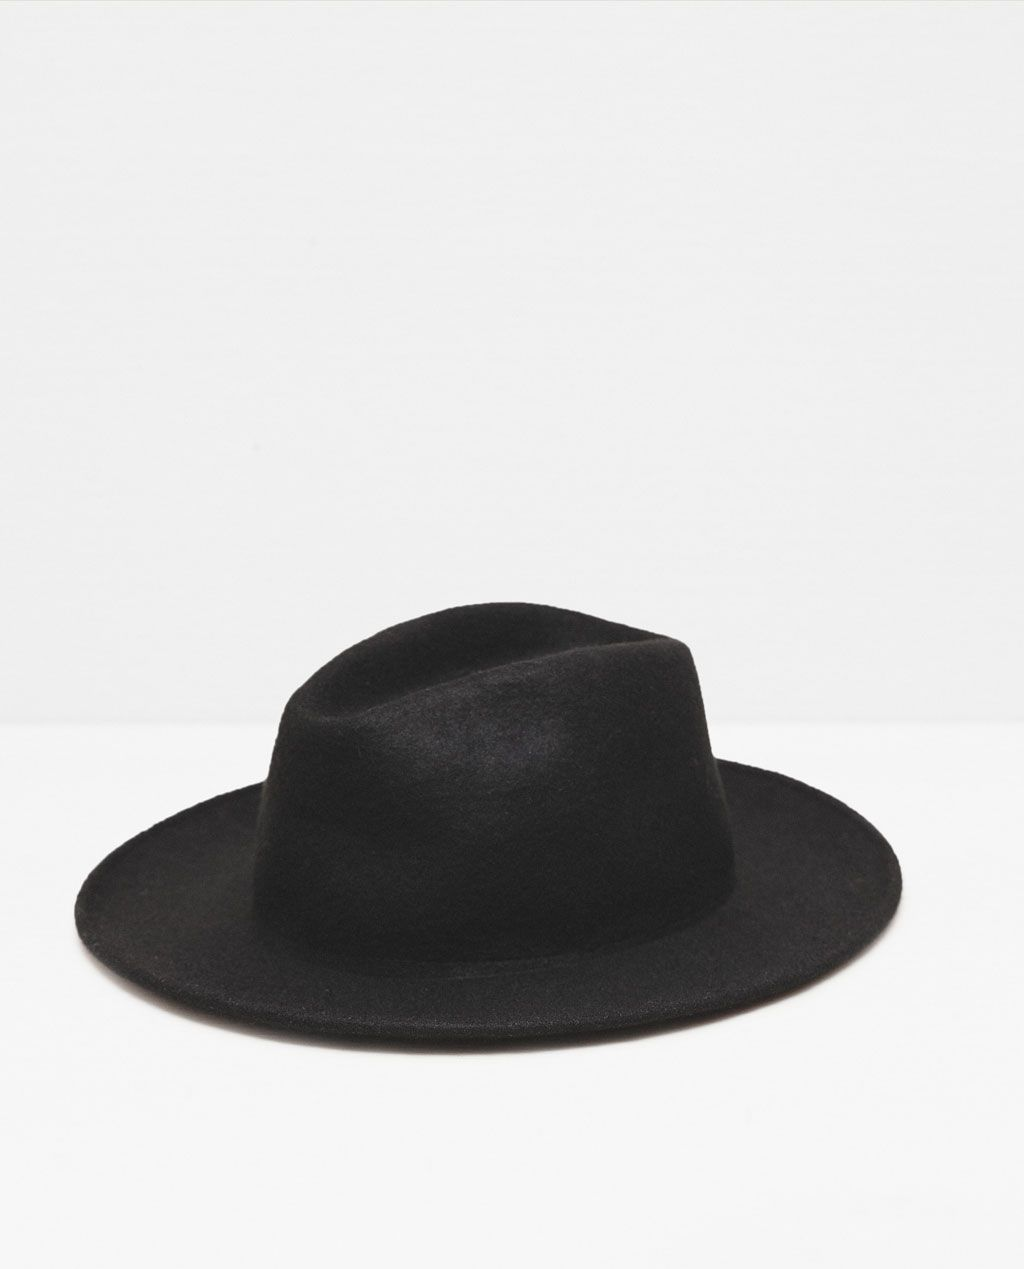 e0ff15e9 FELT HAT-Hats-ACCESSORIES-MAN | ZARA United States | 《 Hats~Beanies ...